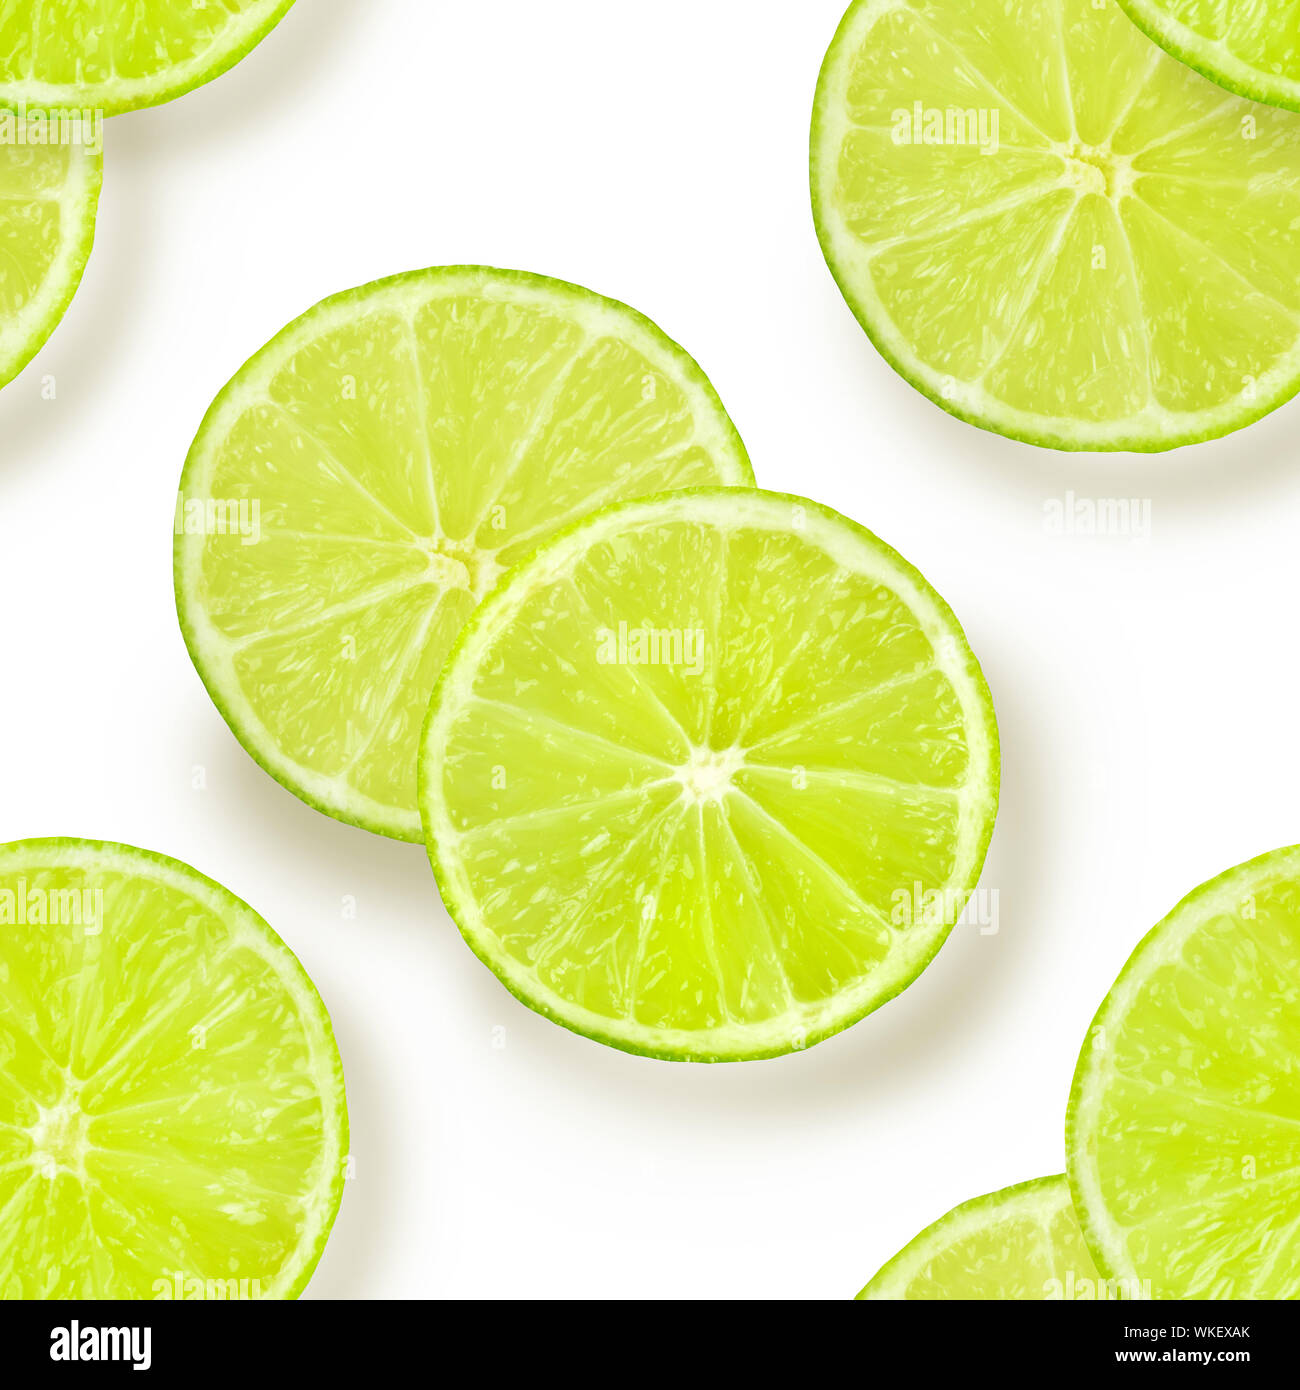 A seamless pattern of lime slices on a white background, a vibrant fruity citrus repeat print Stock Photo